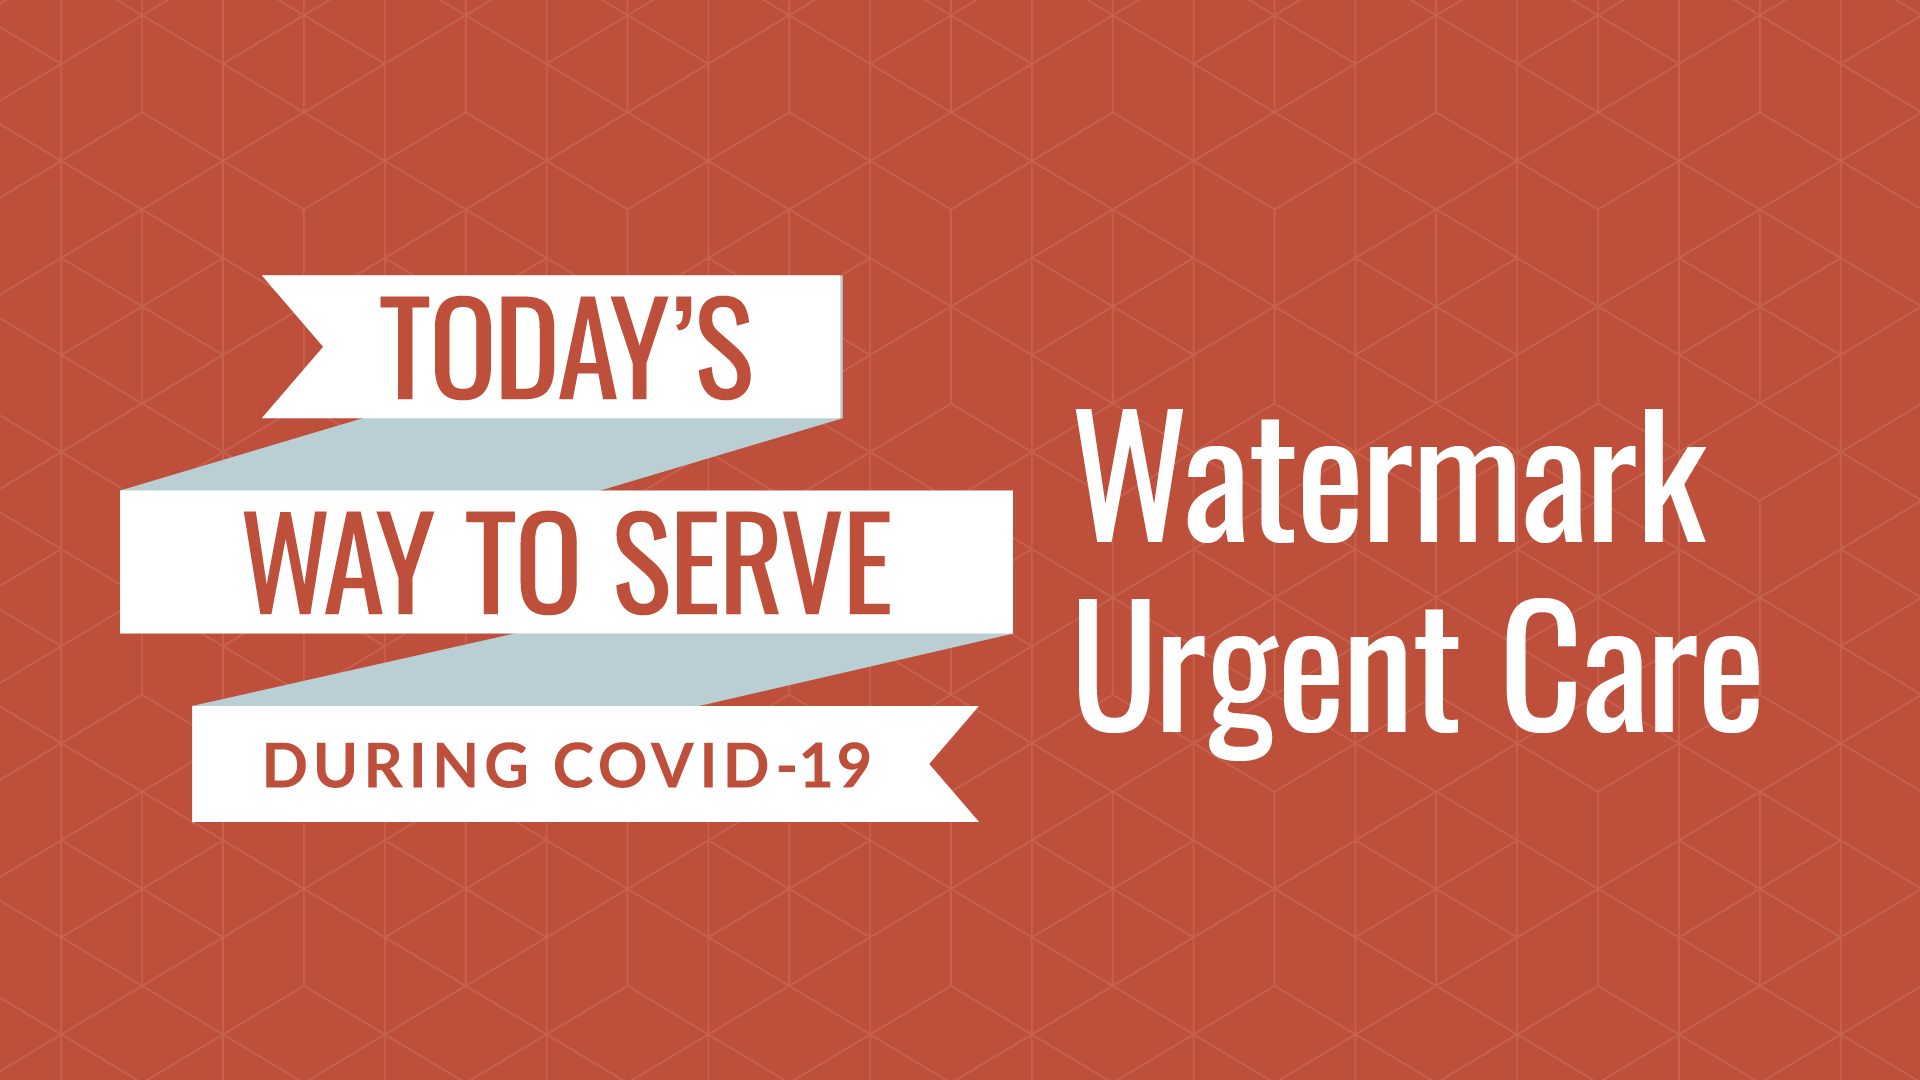 Serving with Watermark Urgent Care during COVID-19 Hero Image